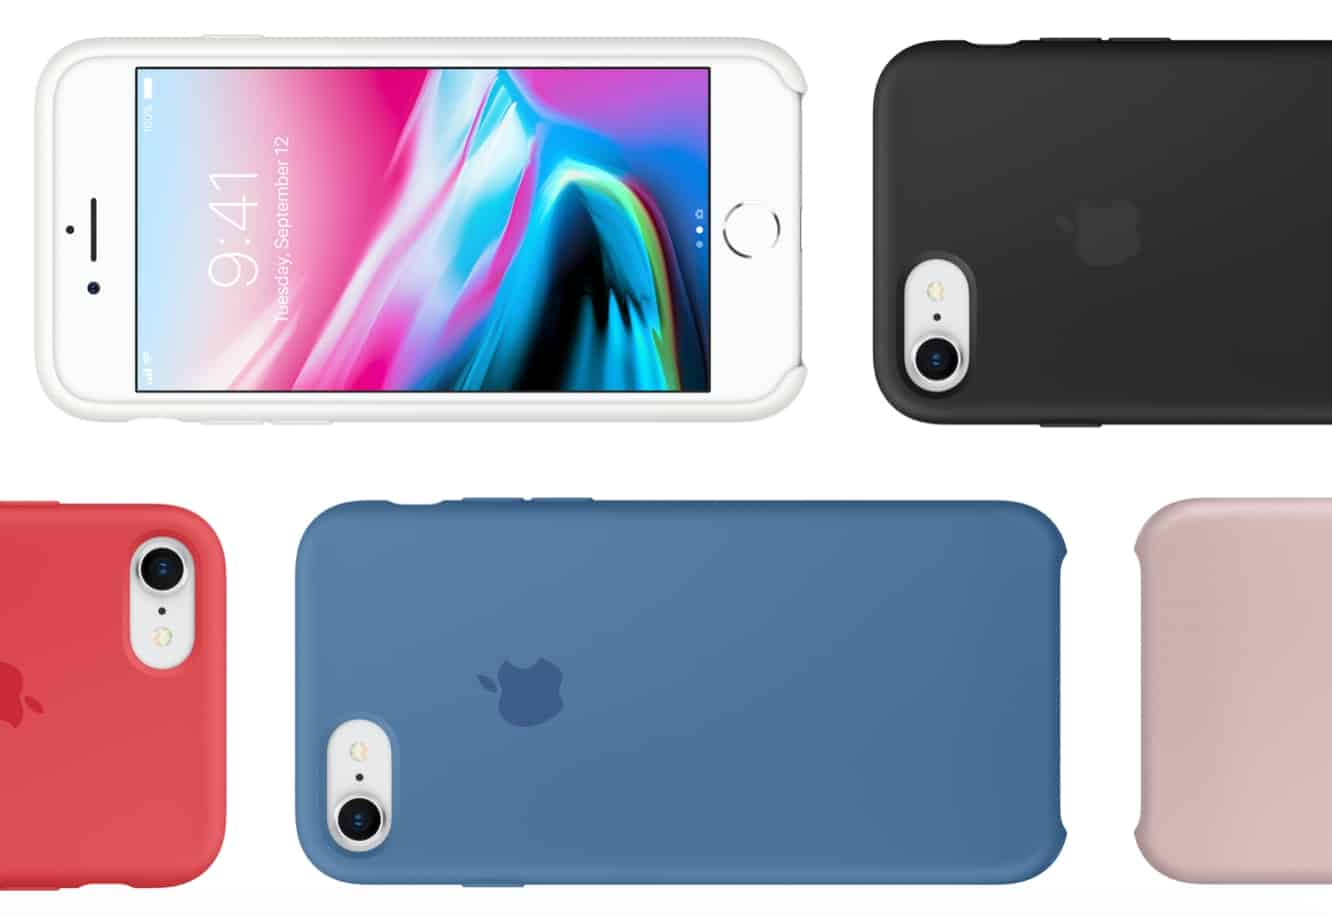 Report: Apple to introduce new colors for 2018 iPhone lineup